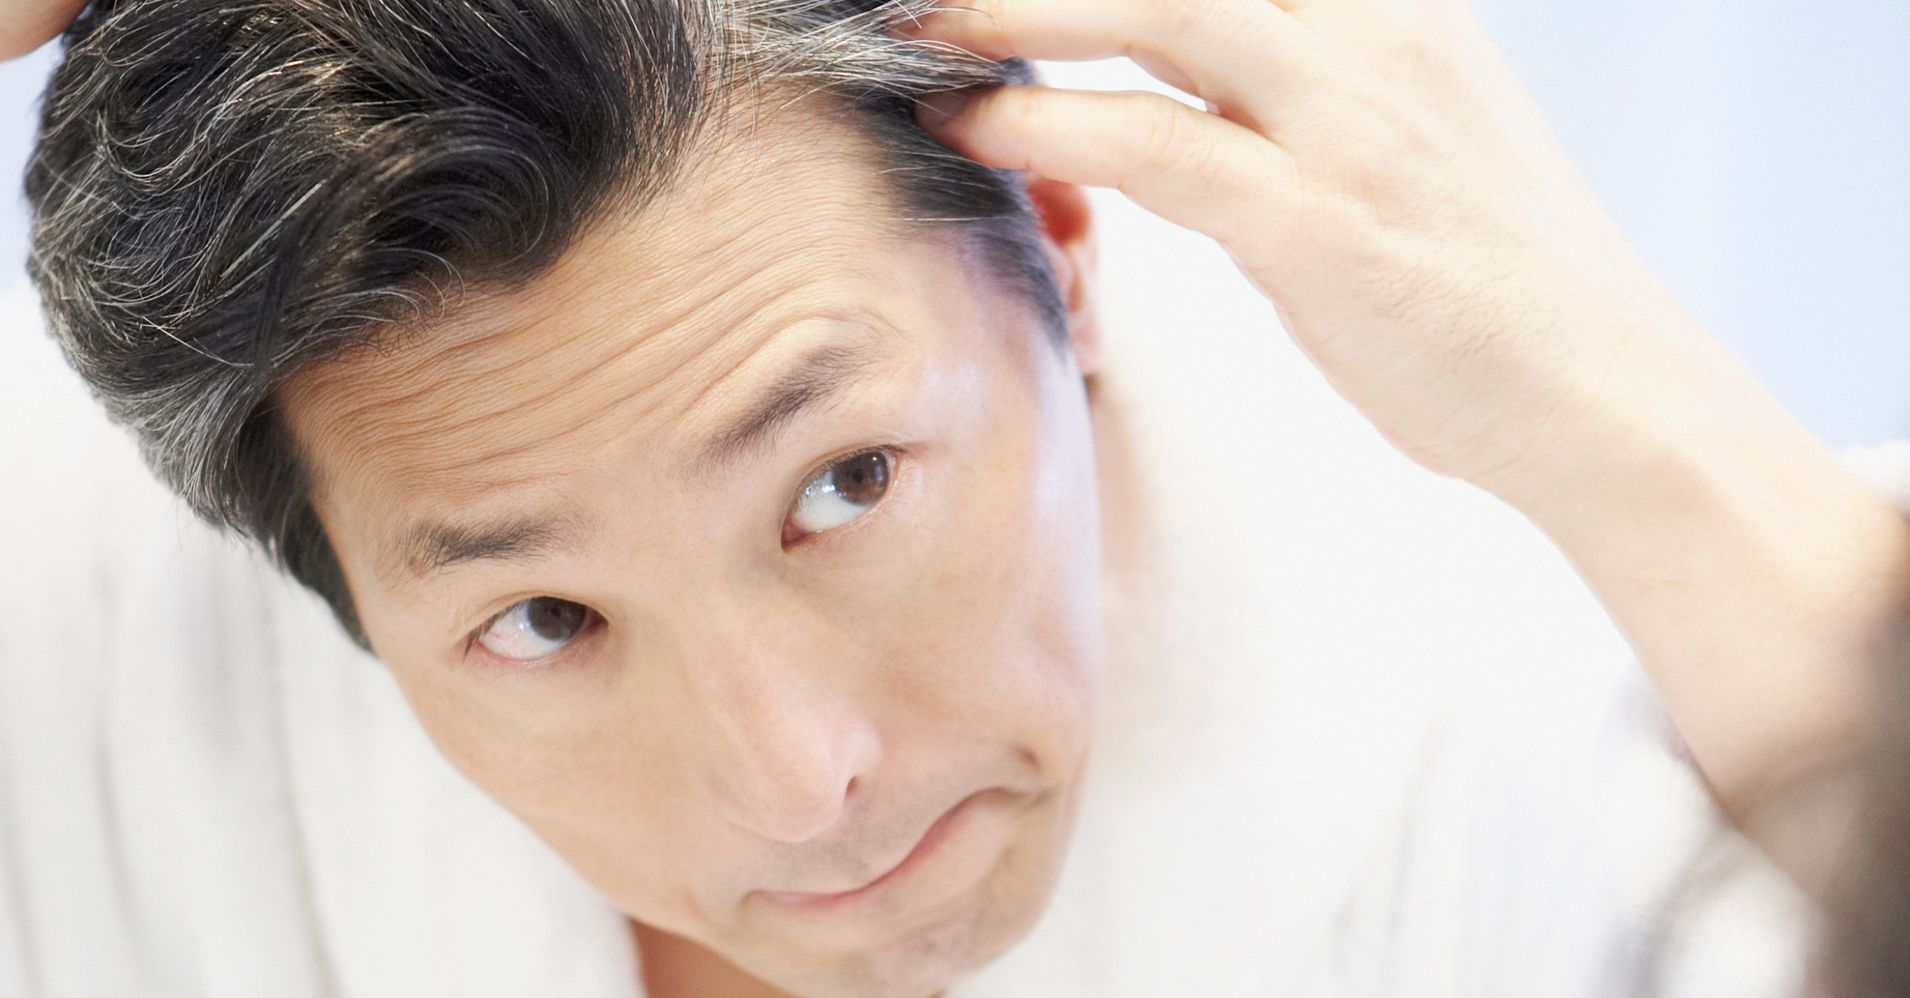 10 Expert Tips On How To Take The Leap And Go Gray